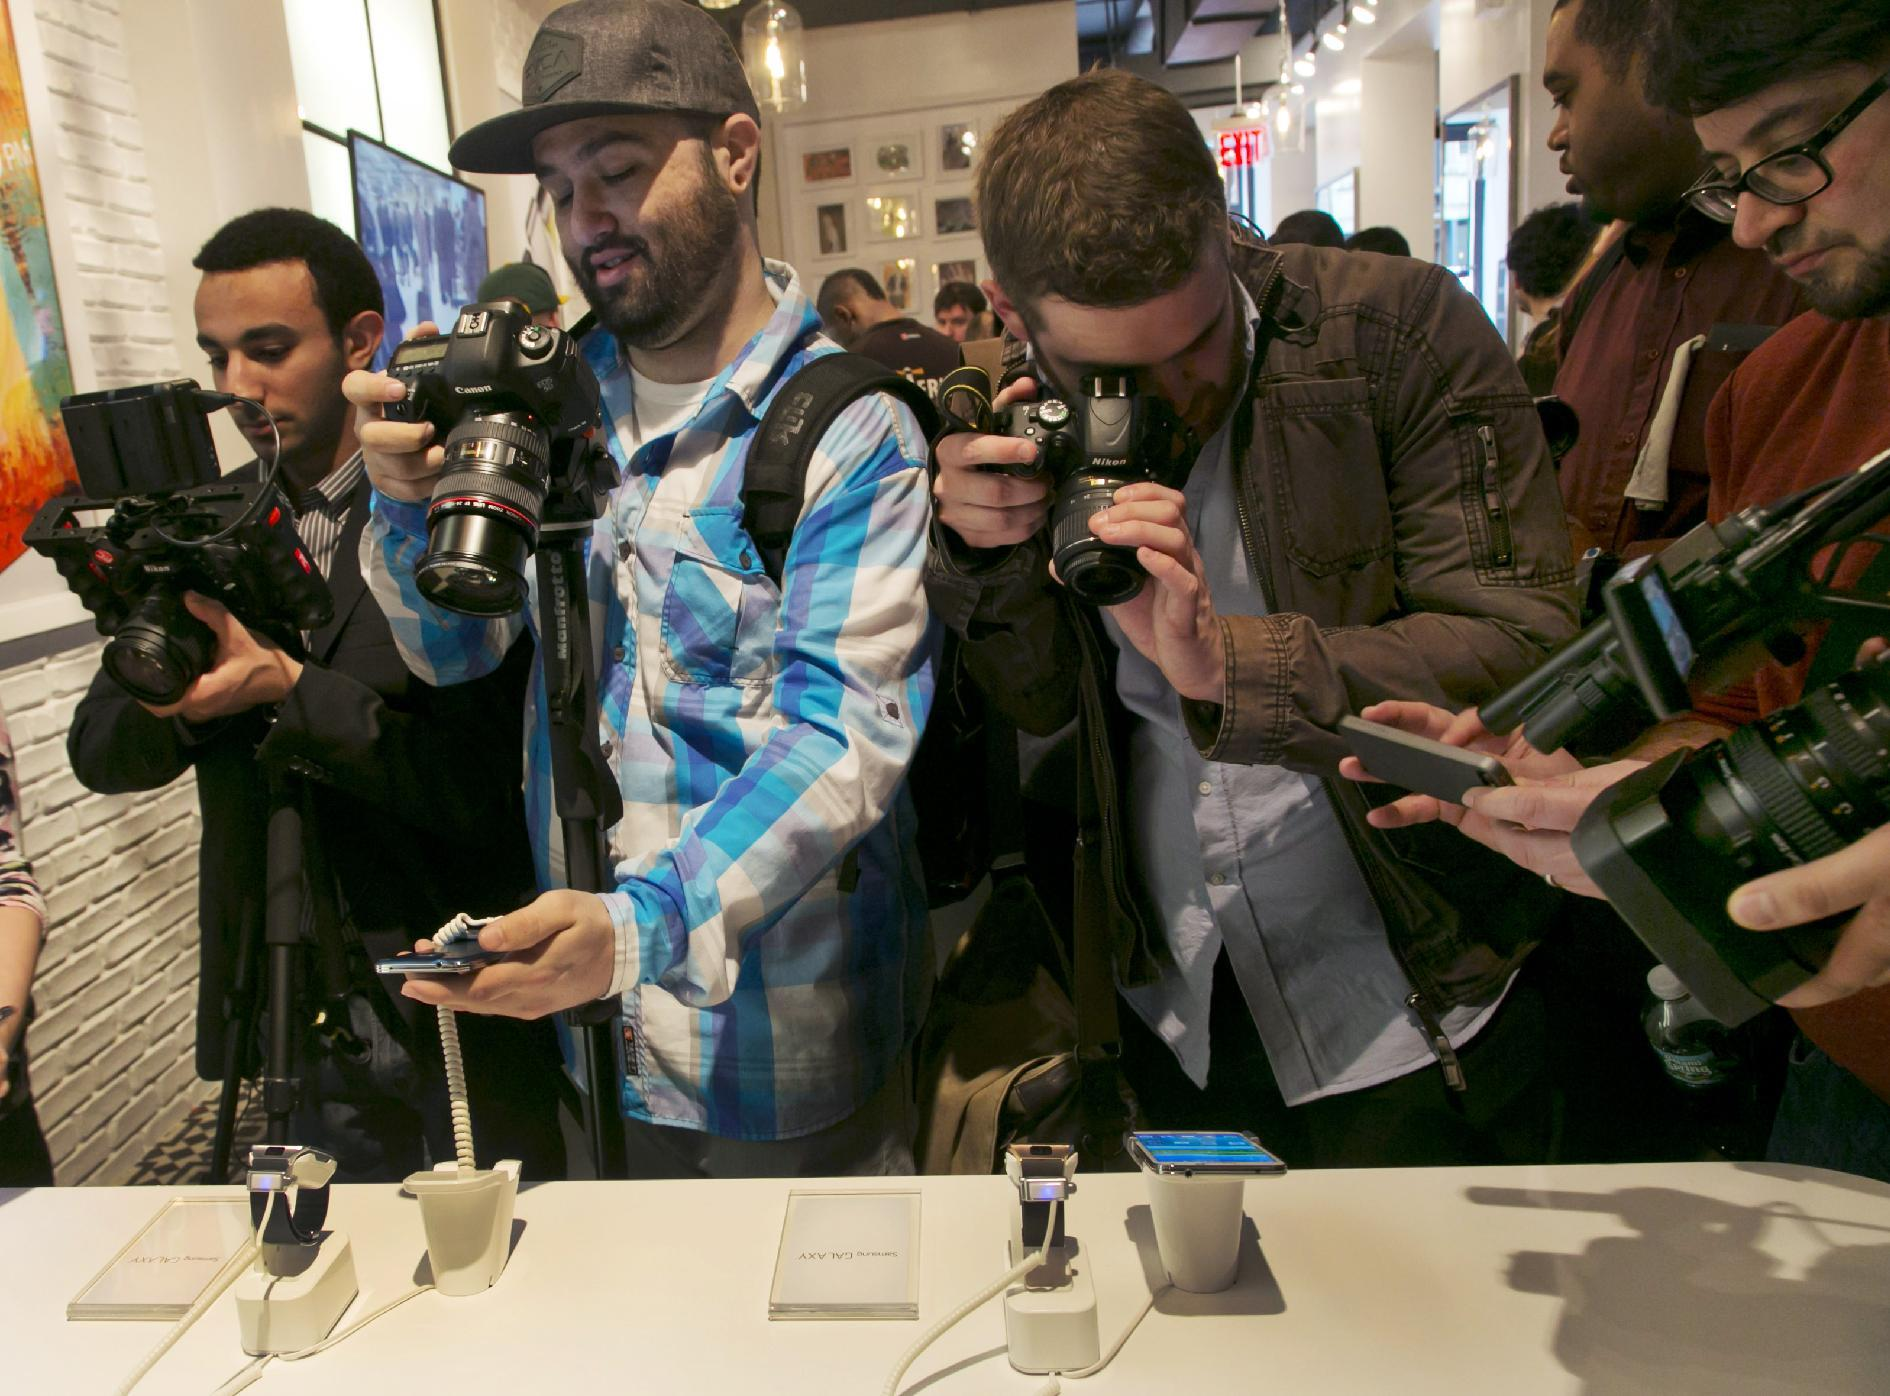 Photographers swarm around a Samsung Galaxy S5 smartphones, left, and Samsung Gear 2's at the Samsung Galaxy Studio, in New York, Monday, Feb. 24, 2014. Samsung on Monday unveiled a new smartphone with a built-in heart rate monitor to complement three upcoming fitness devices, as the Korean companies tries to turn its technological wizardry into lifestyle product. (AP Photo/Richard Drew)